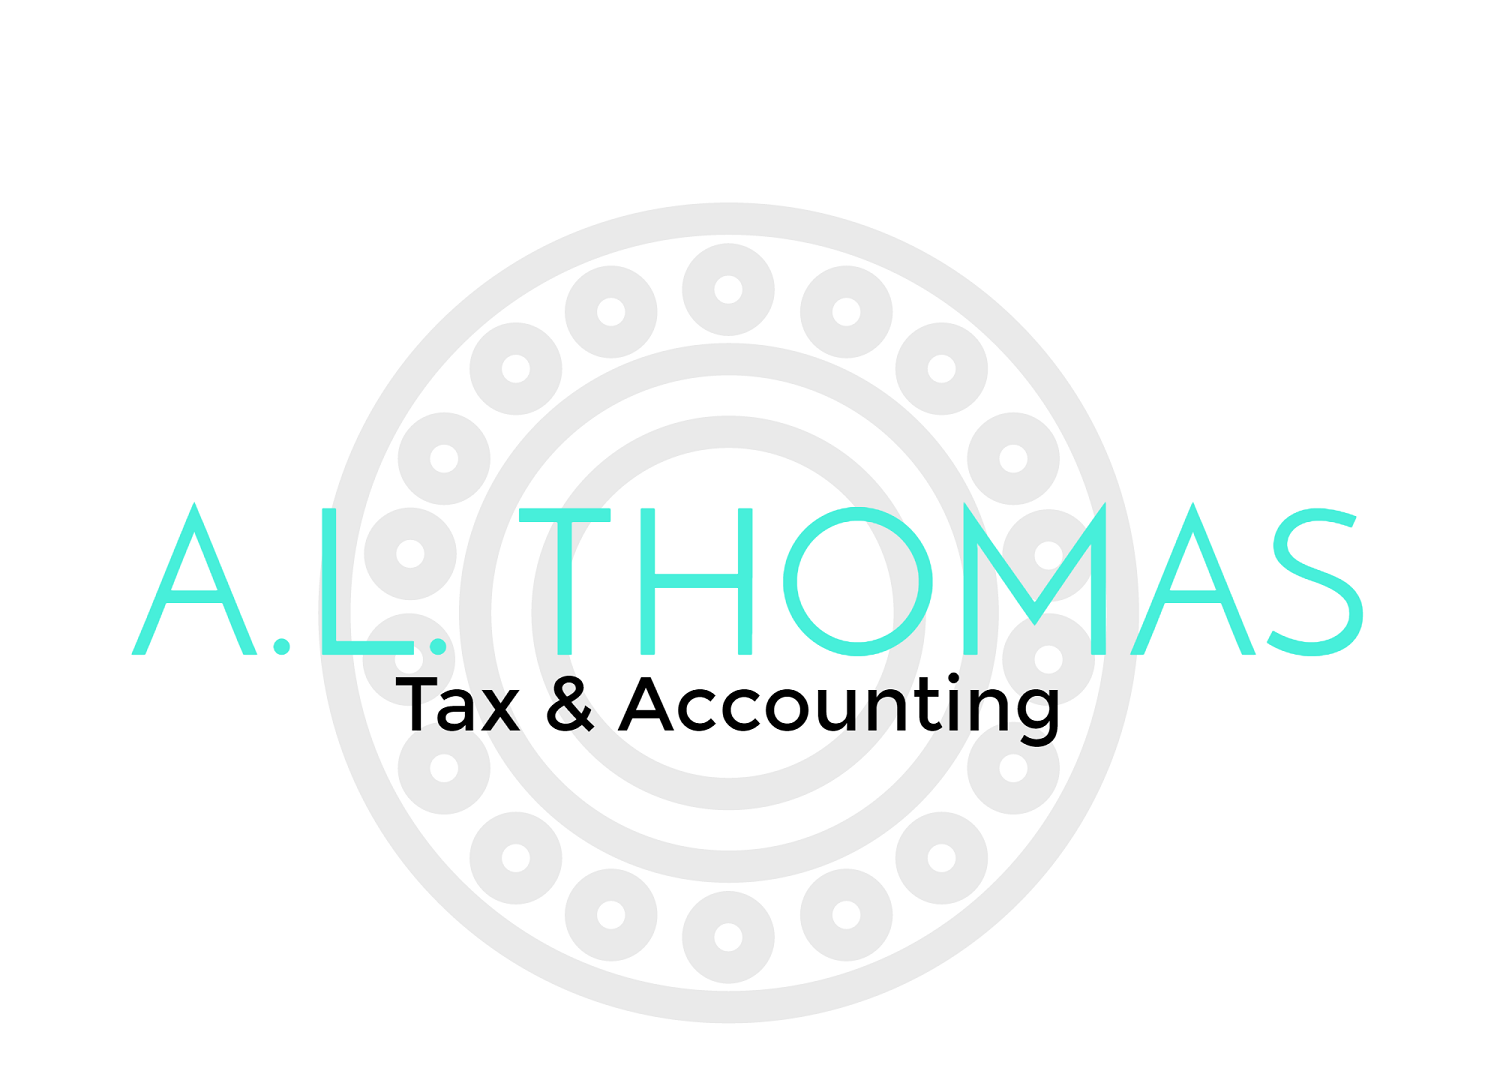 A.L Thomas Tax & Accounting